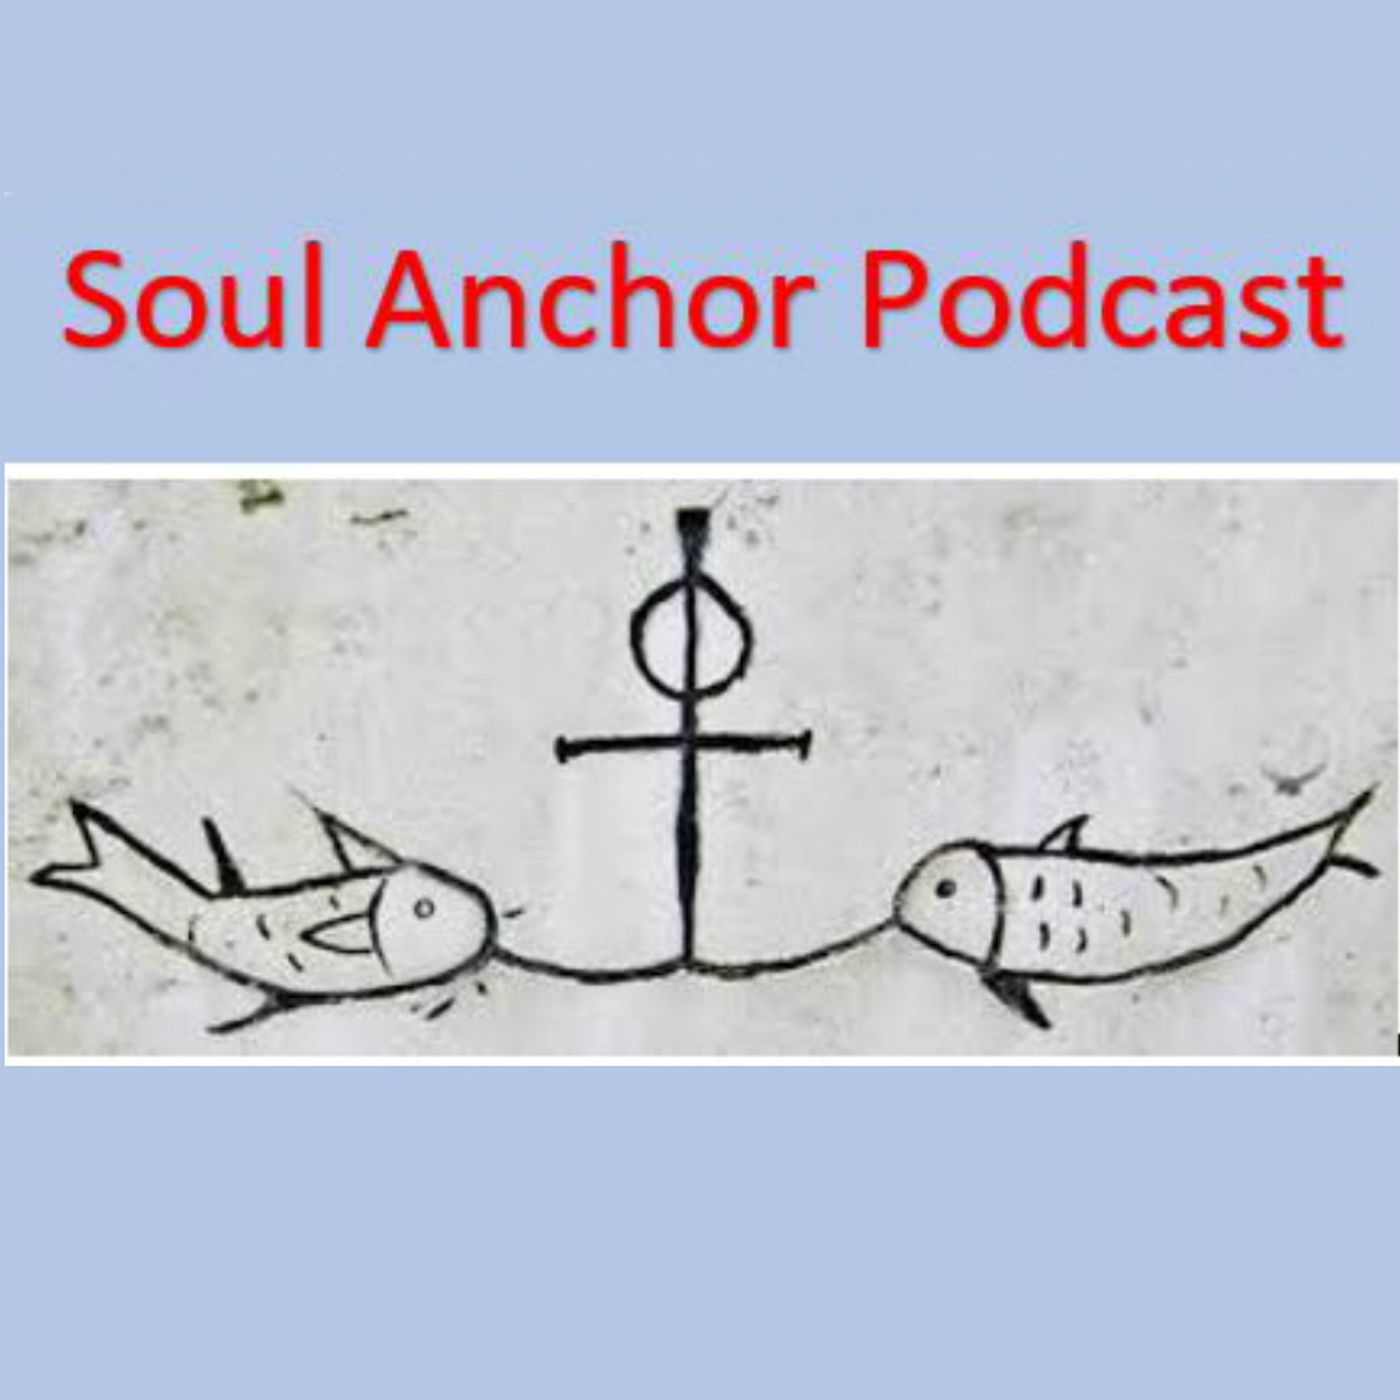 Soul Anchor Podcast